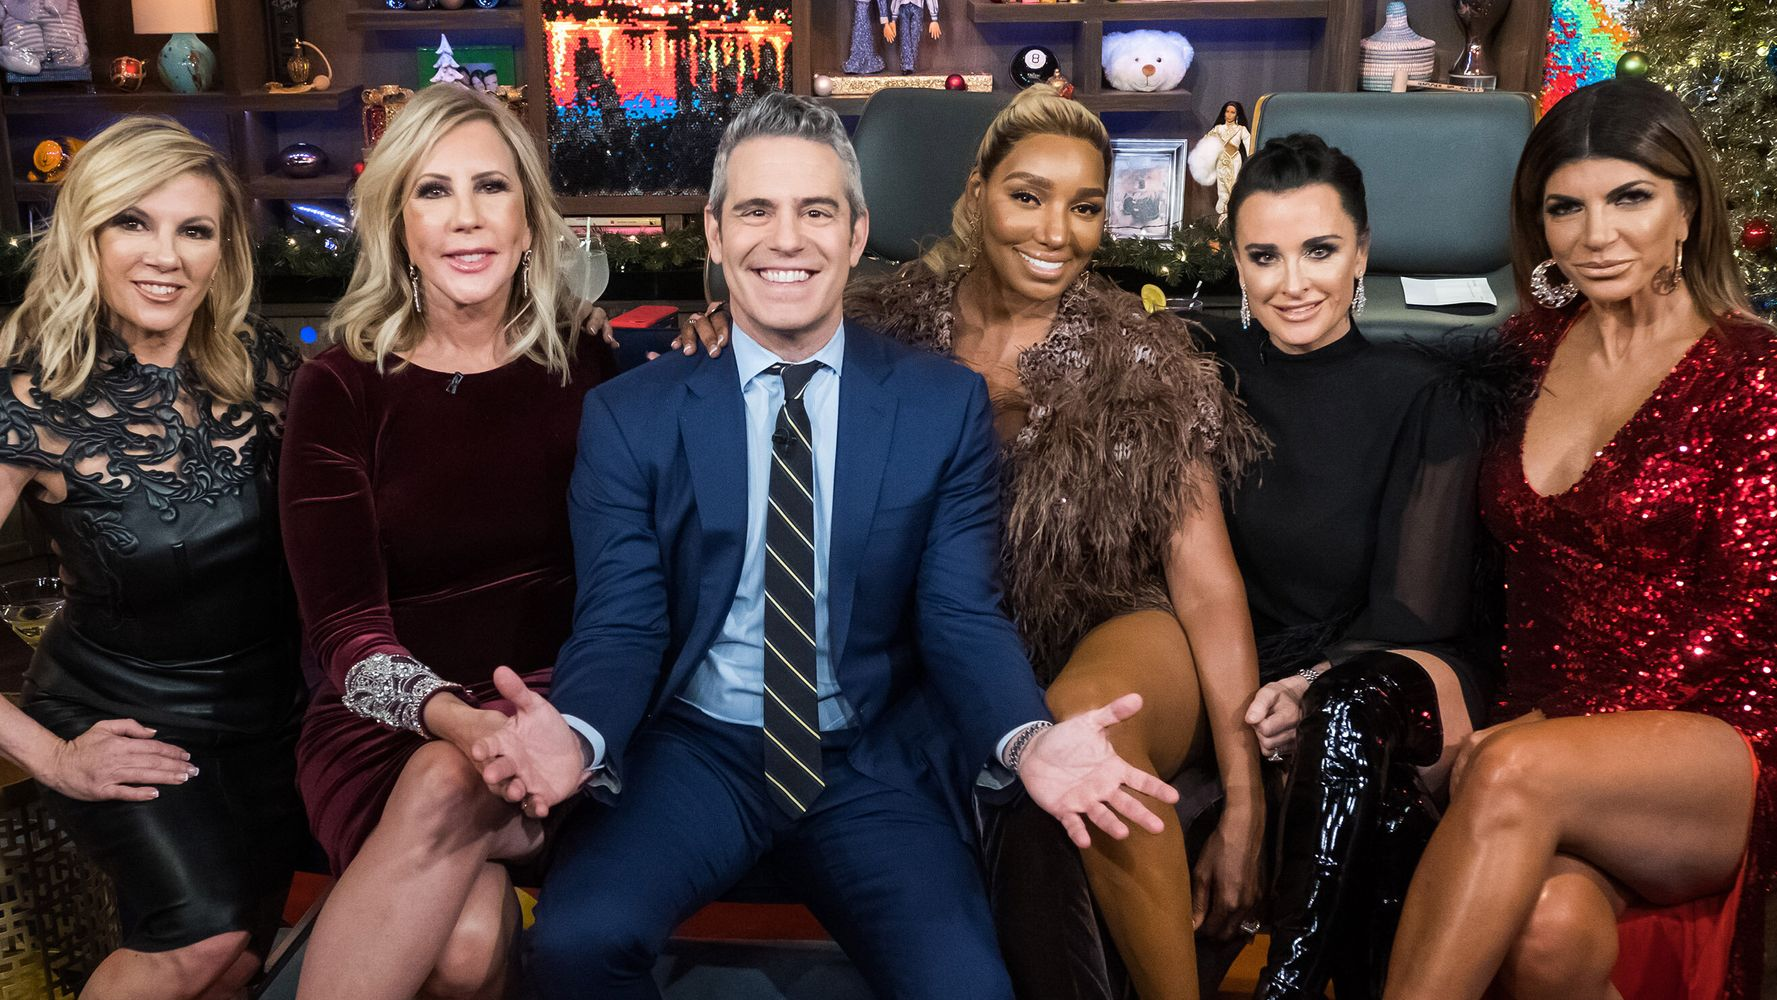 Andy Cohen Says He's Offended On Behalf Of 'Real Housewives' Over Comparisons To Trump